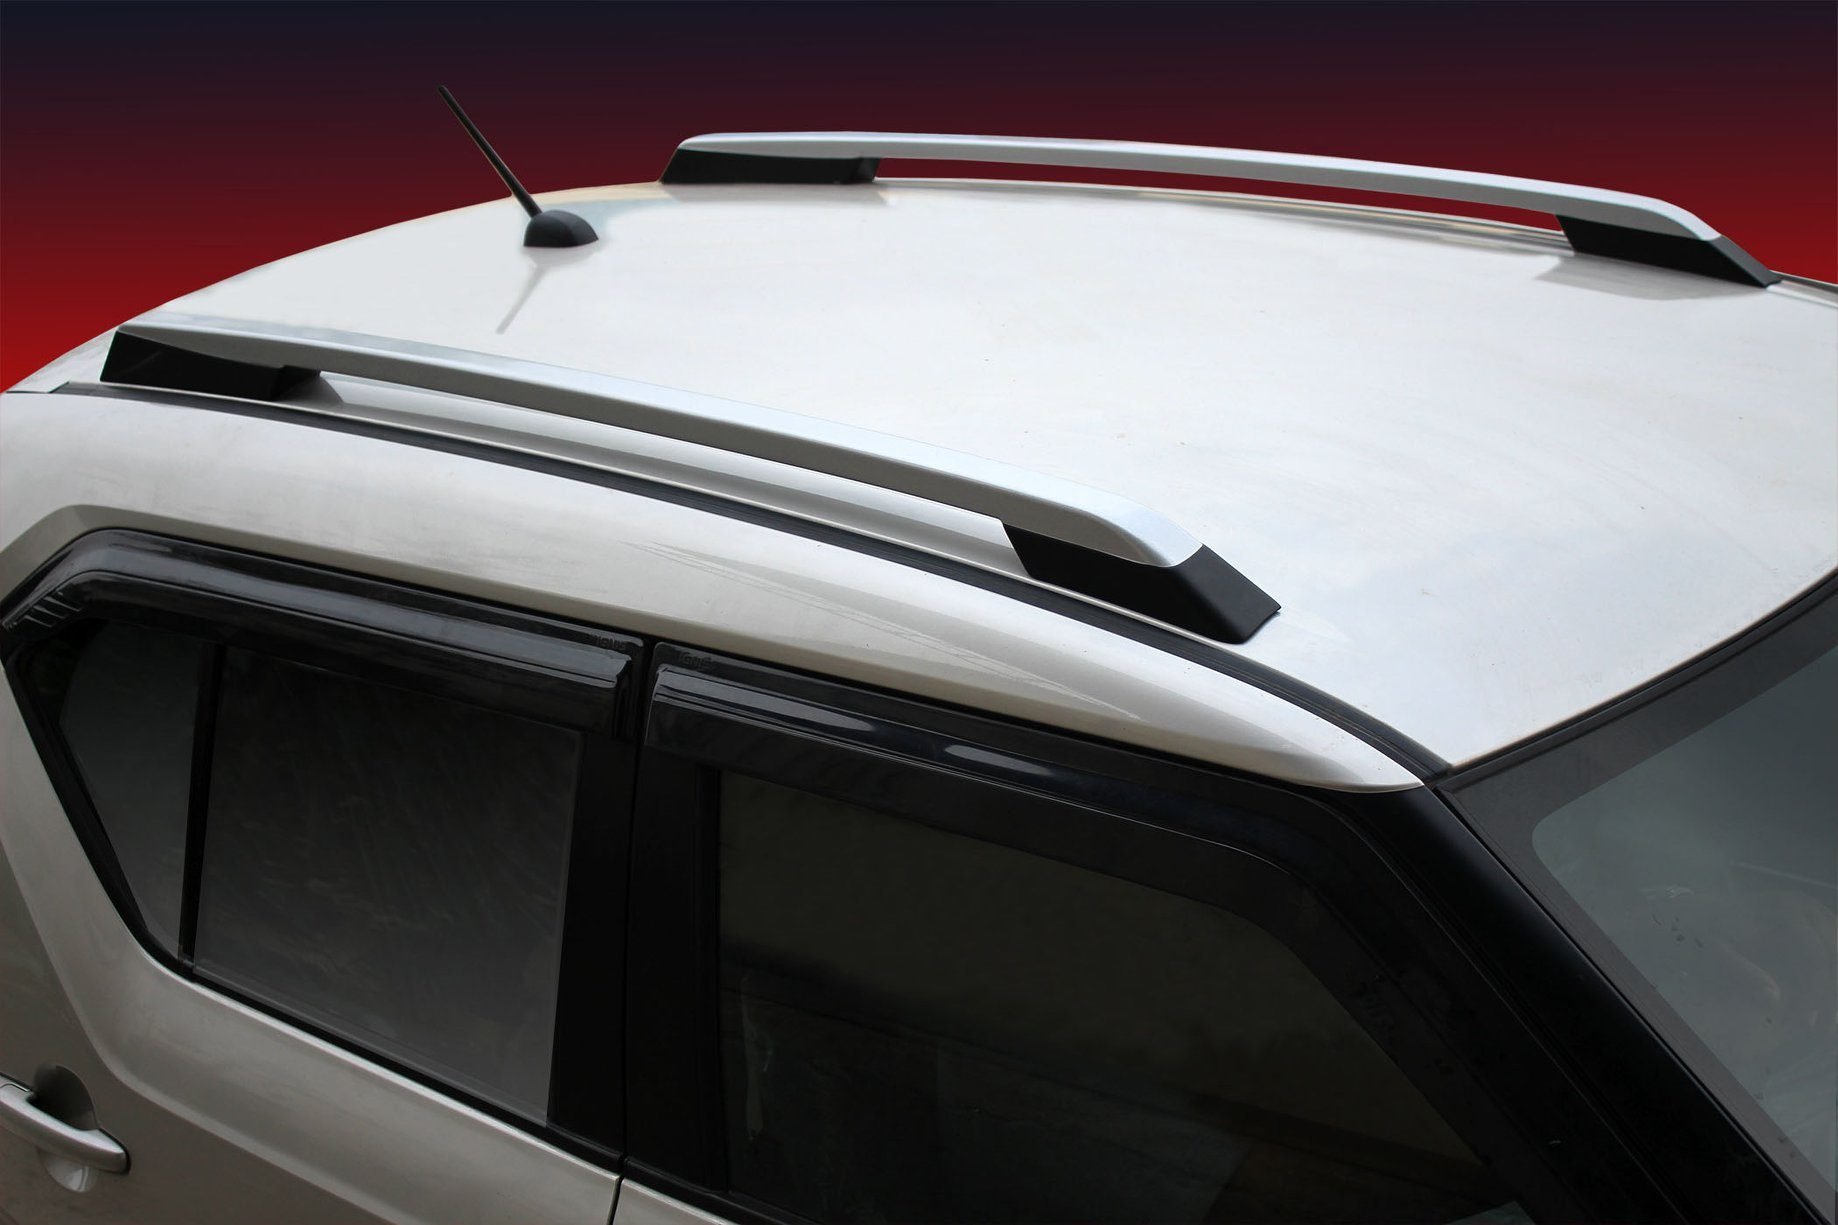 Custom Fit Premium Quality Roof Rail Garnish For Maruti Nexa Ignis